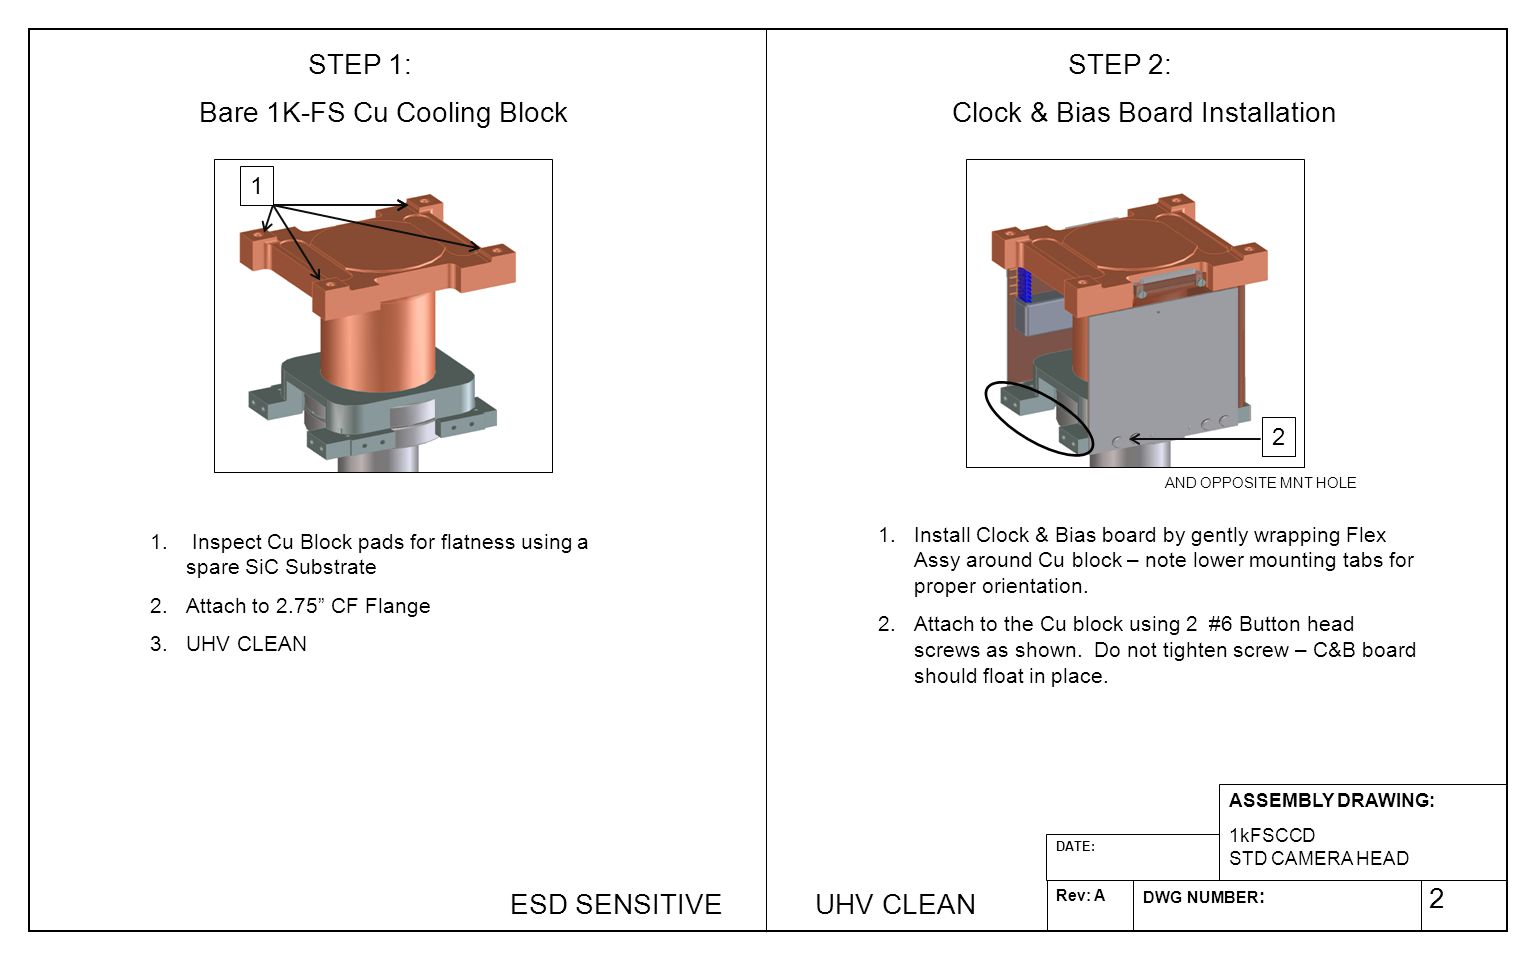 2 ASSEMBLY DRAWING: 1kFSCCD STD CAMERA HEAD DWG NUMBER : Rev: A DATE: 1.